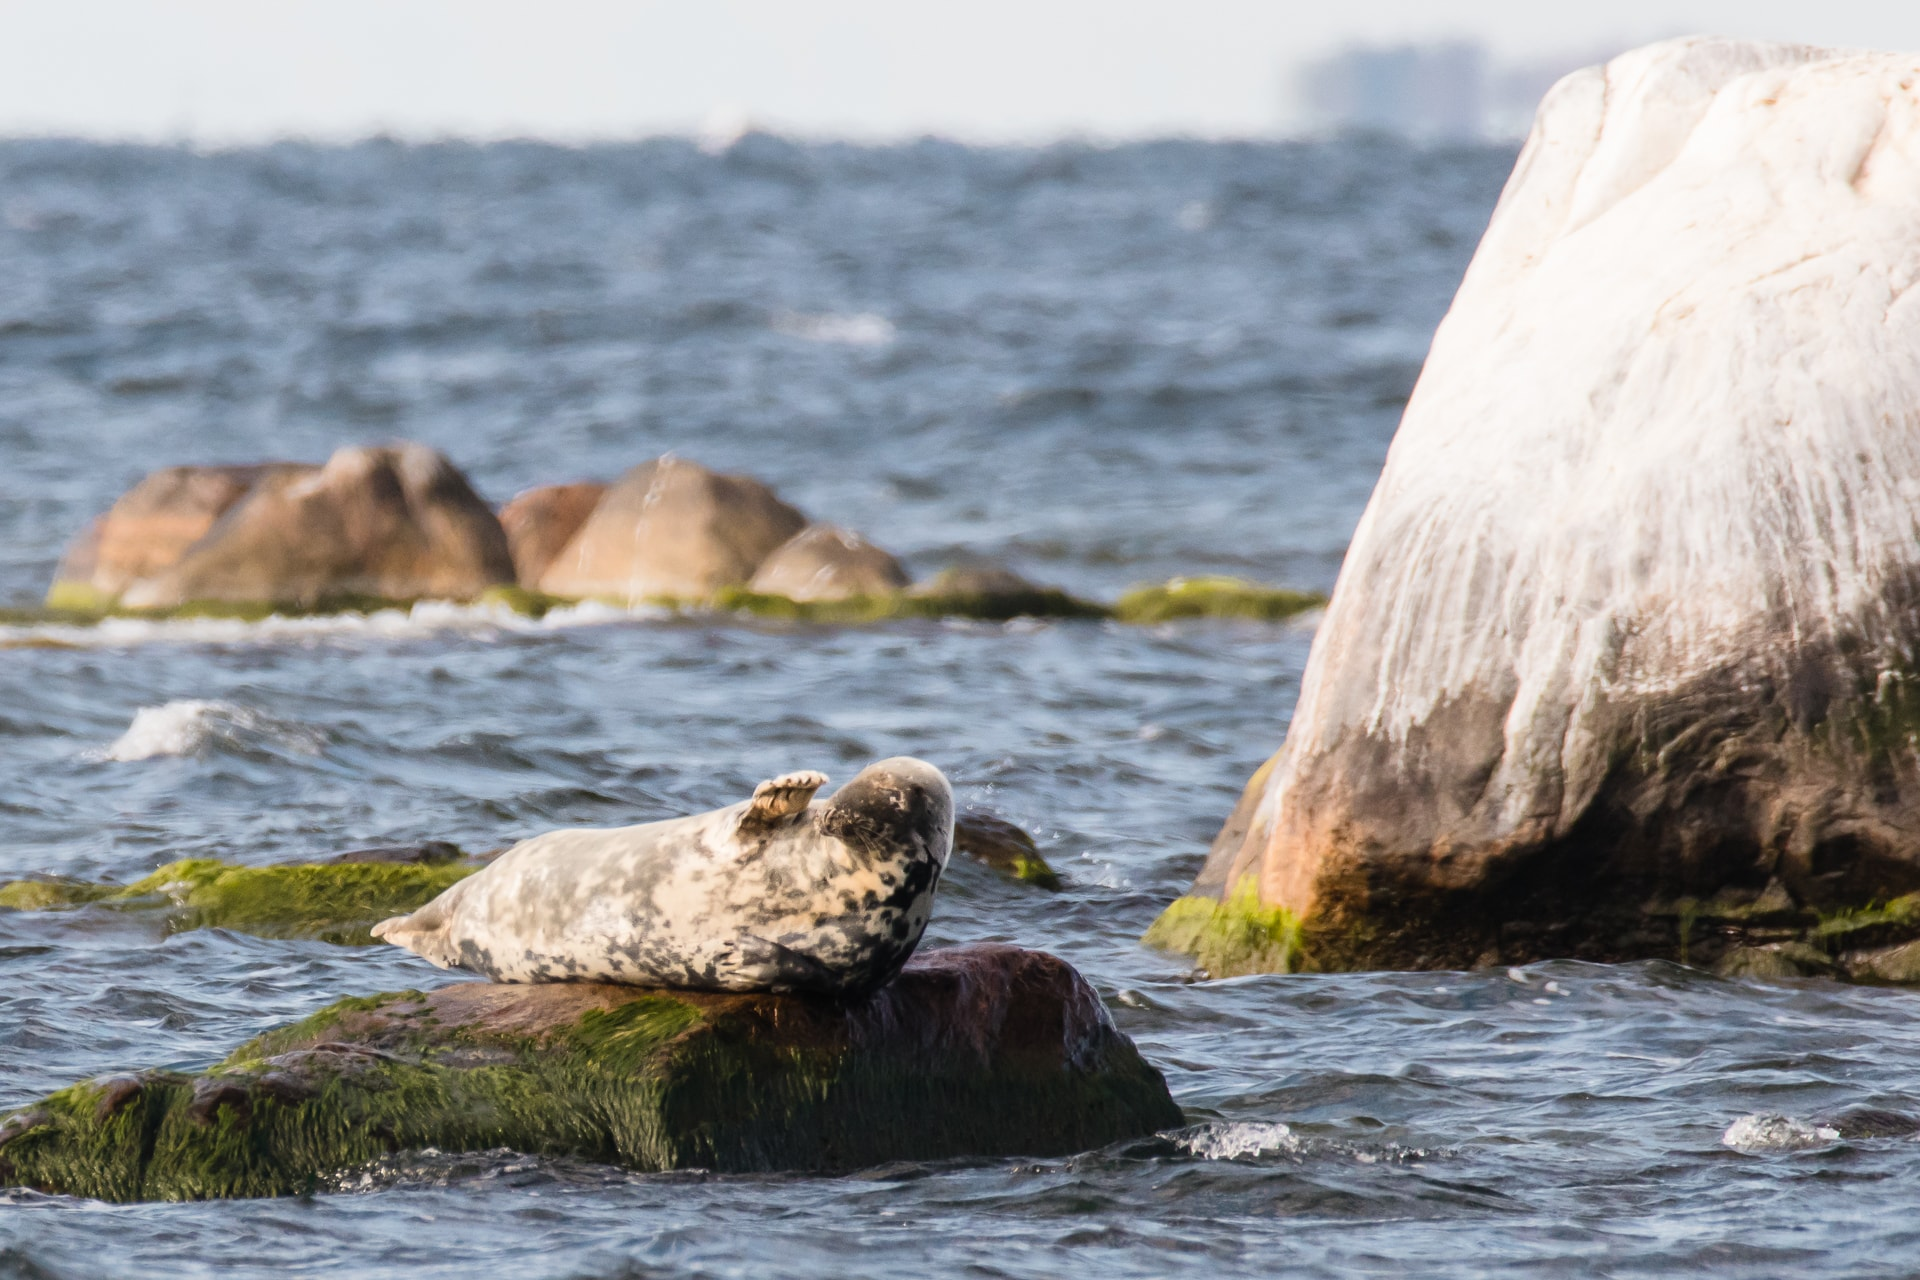 Marko Poolamets. A grey seal saying hello to the people on the seal-watching trip